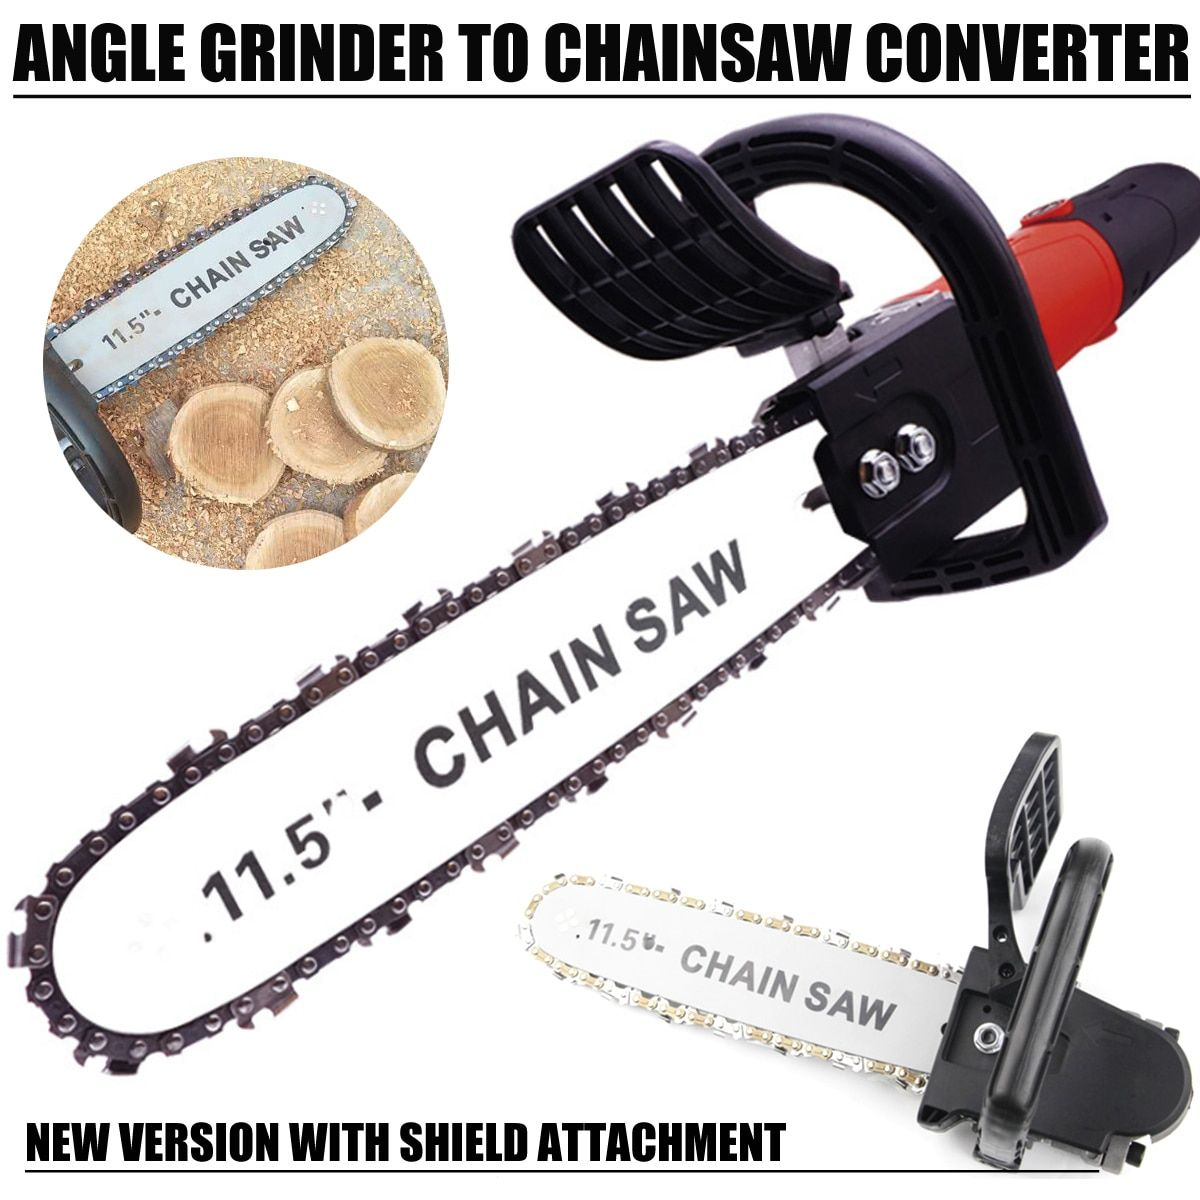 DIY Electric Saw 11.5 Inch Chainsaw Bracket Set Angle Grinder to Chainsaw converter For 100 Angle Grinder M10 To Chain Saw